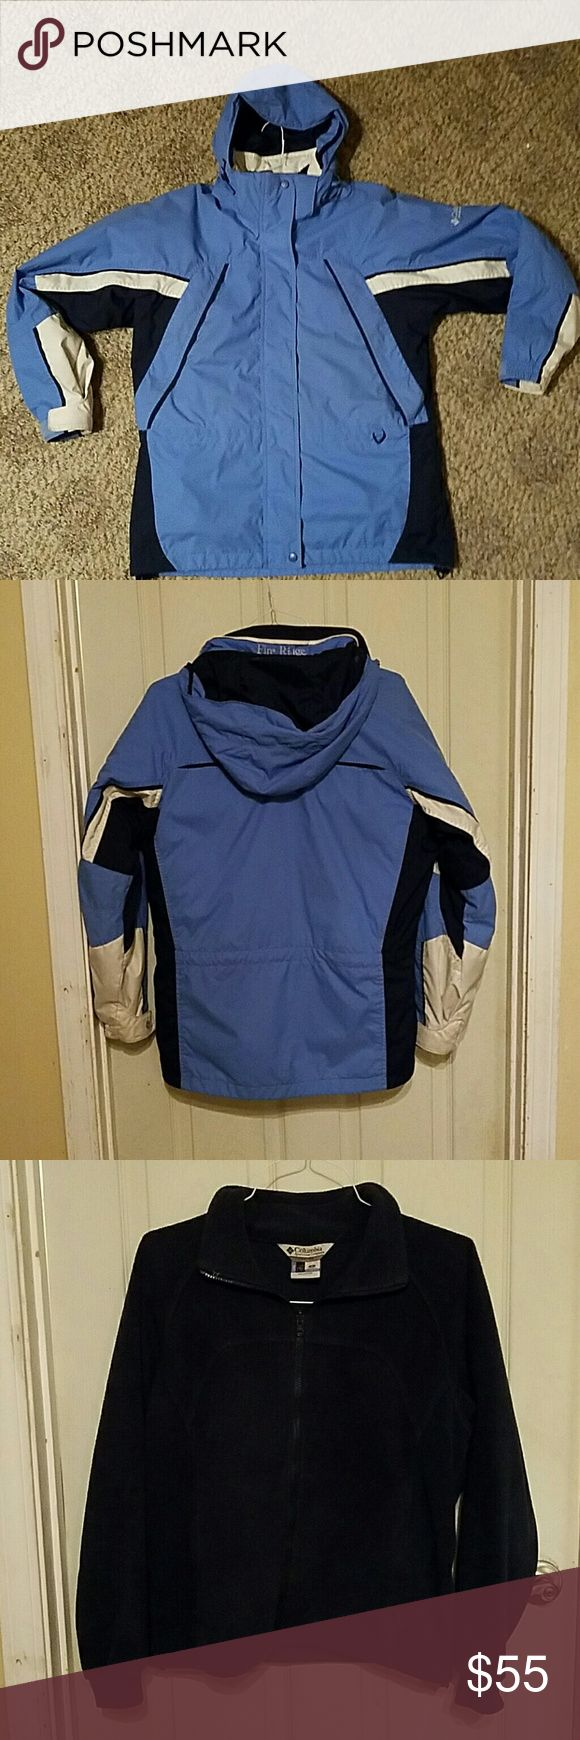 GUC Columbia women's 3-in-1 winter coat Blue shell with white and navy accents. Navy blue fleece zip up. Can be zipped together and worn as one very warm coat or worn separately. Shell has velcro at the wrists, waist drawstring, bottom drawstring, removable adjustable hood, 2 front zippered pockets, inside zippered pocket, and an extra hidden pocket on the back. Fleece had 2 zippered hand pockets. Smoke free home, coat will be washed prior to sale. Columbia Jackets & Coats